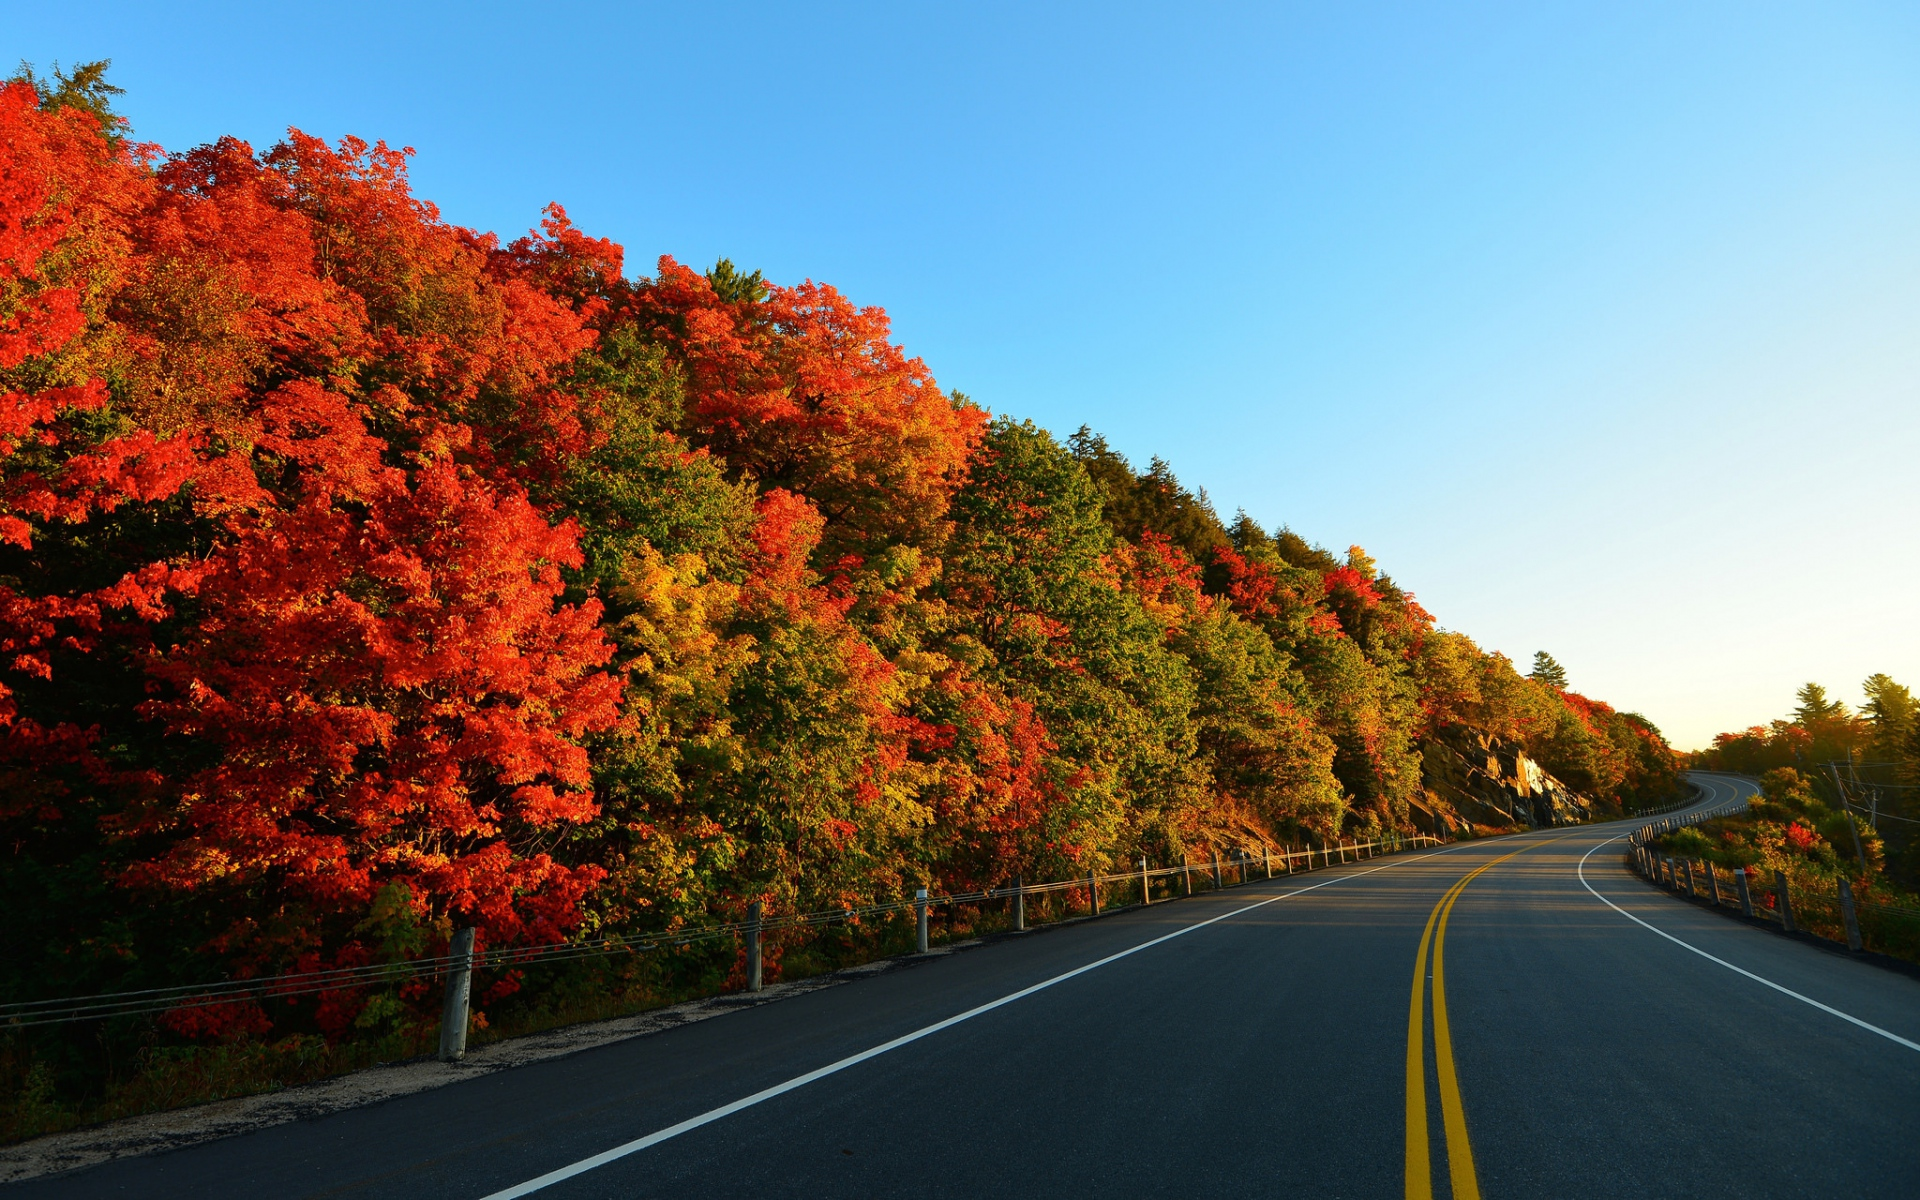 Fall Leaves Wallpaper For Ipad Autumn Trees Amp Curvy Road Wallpapers Autumn Trees